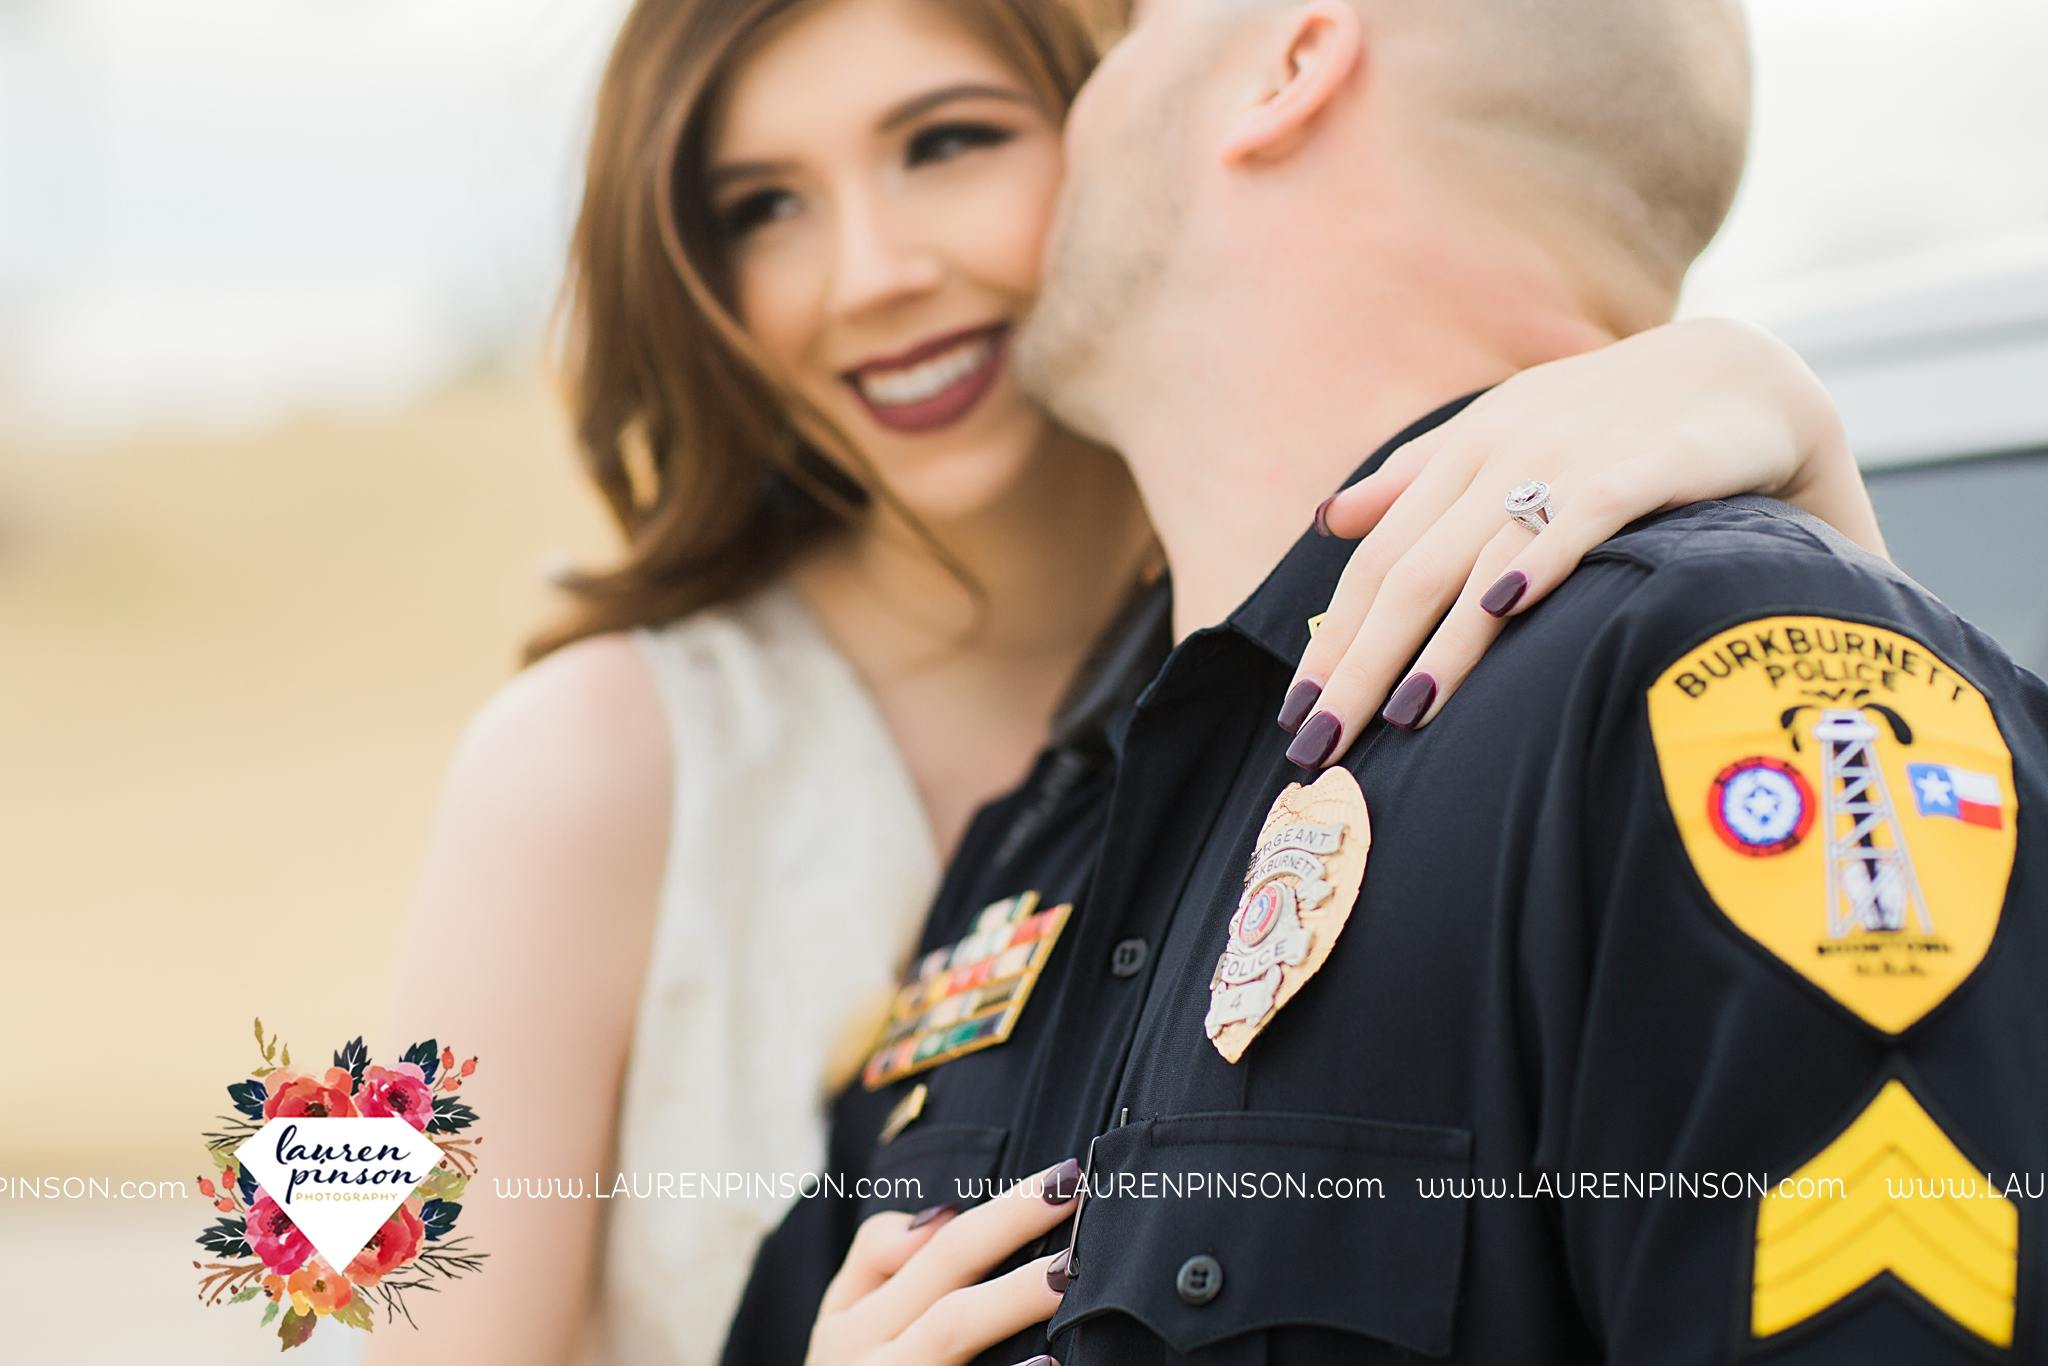 wichita-falls-texas-photographer-burkburnett-engagement-session-wichita-mountains-police-officer_4155.jpg